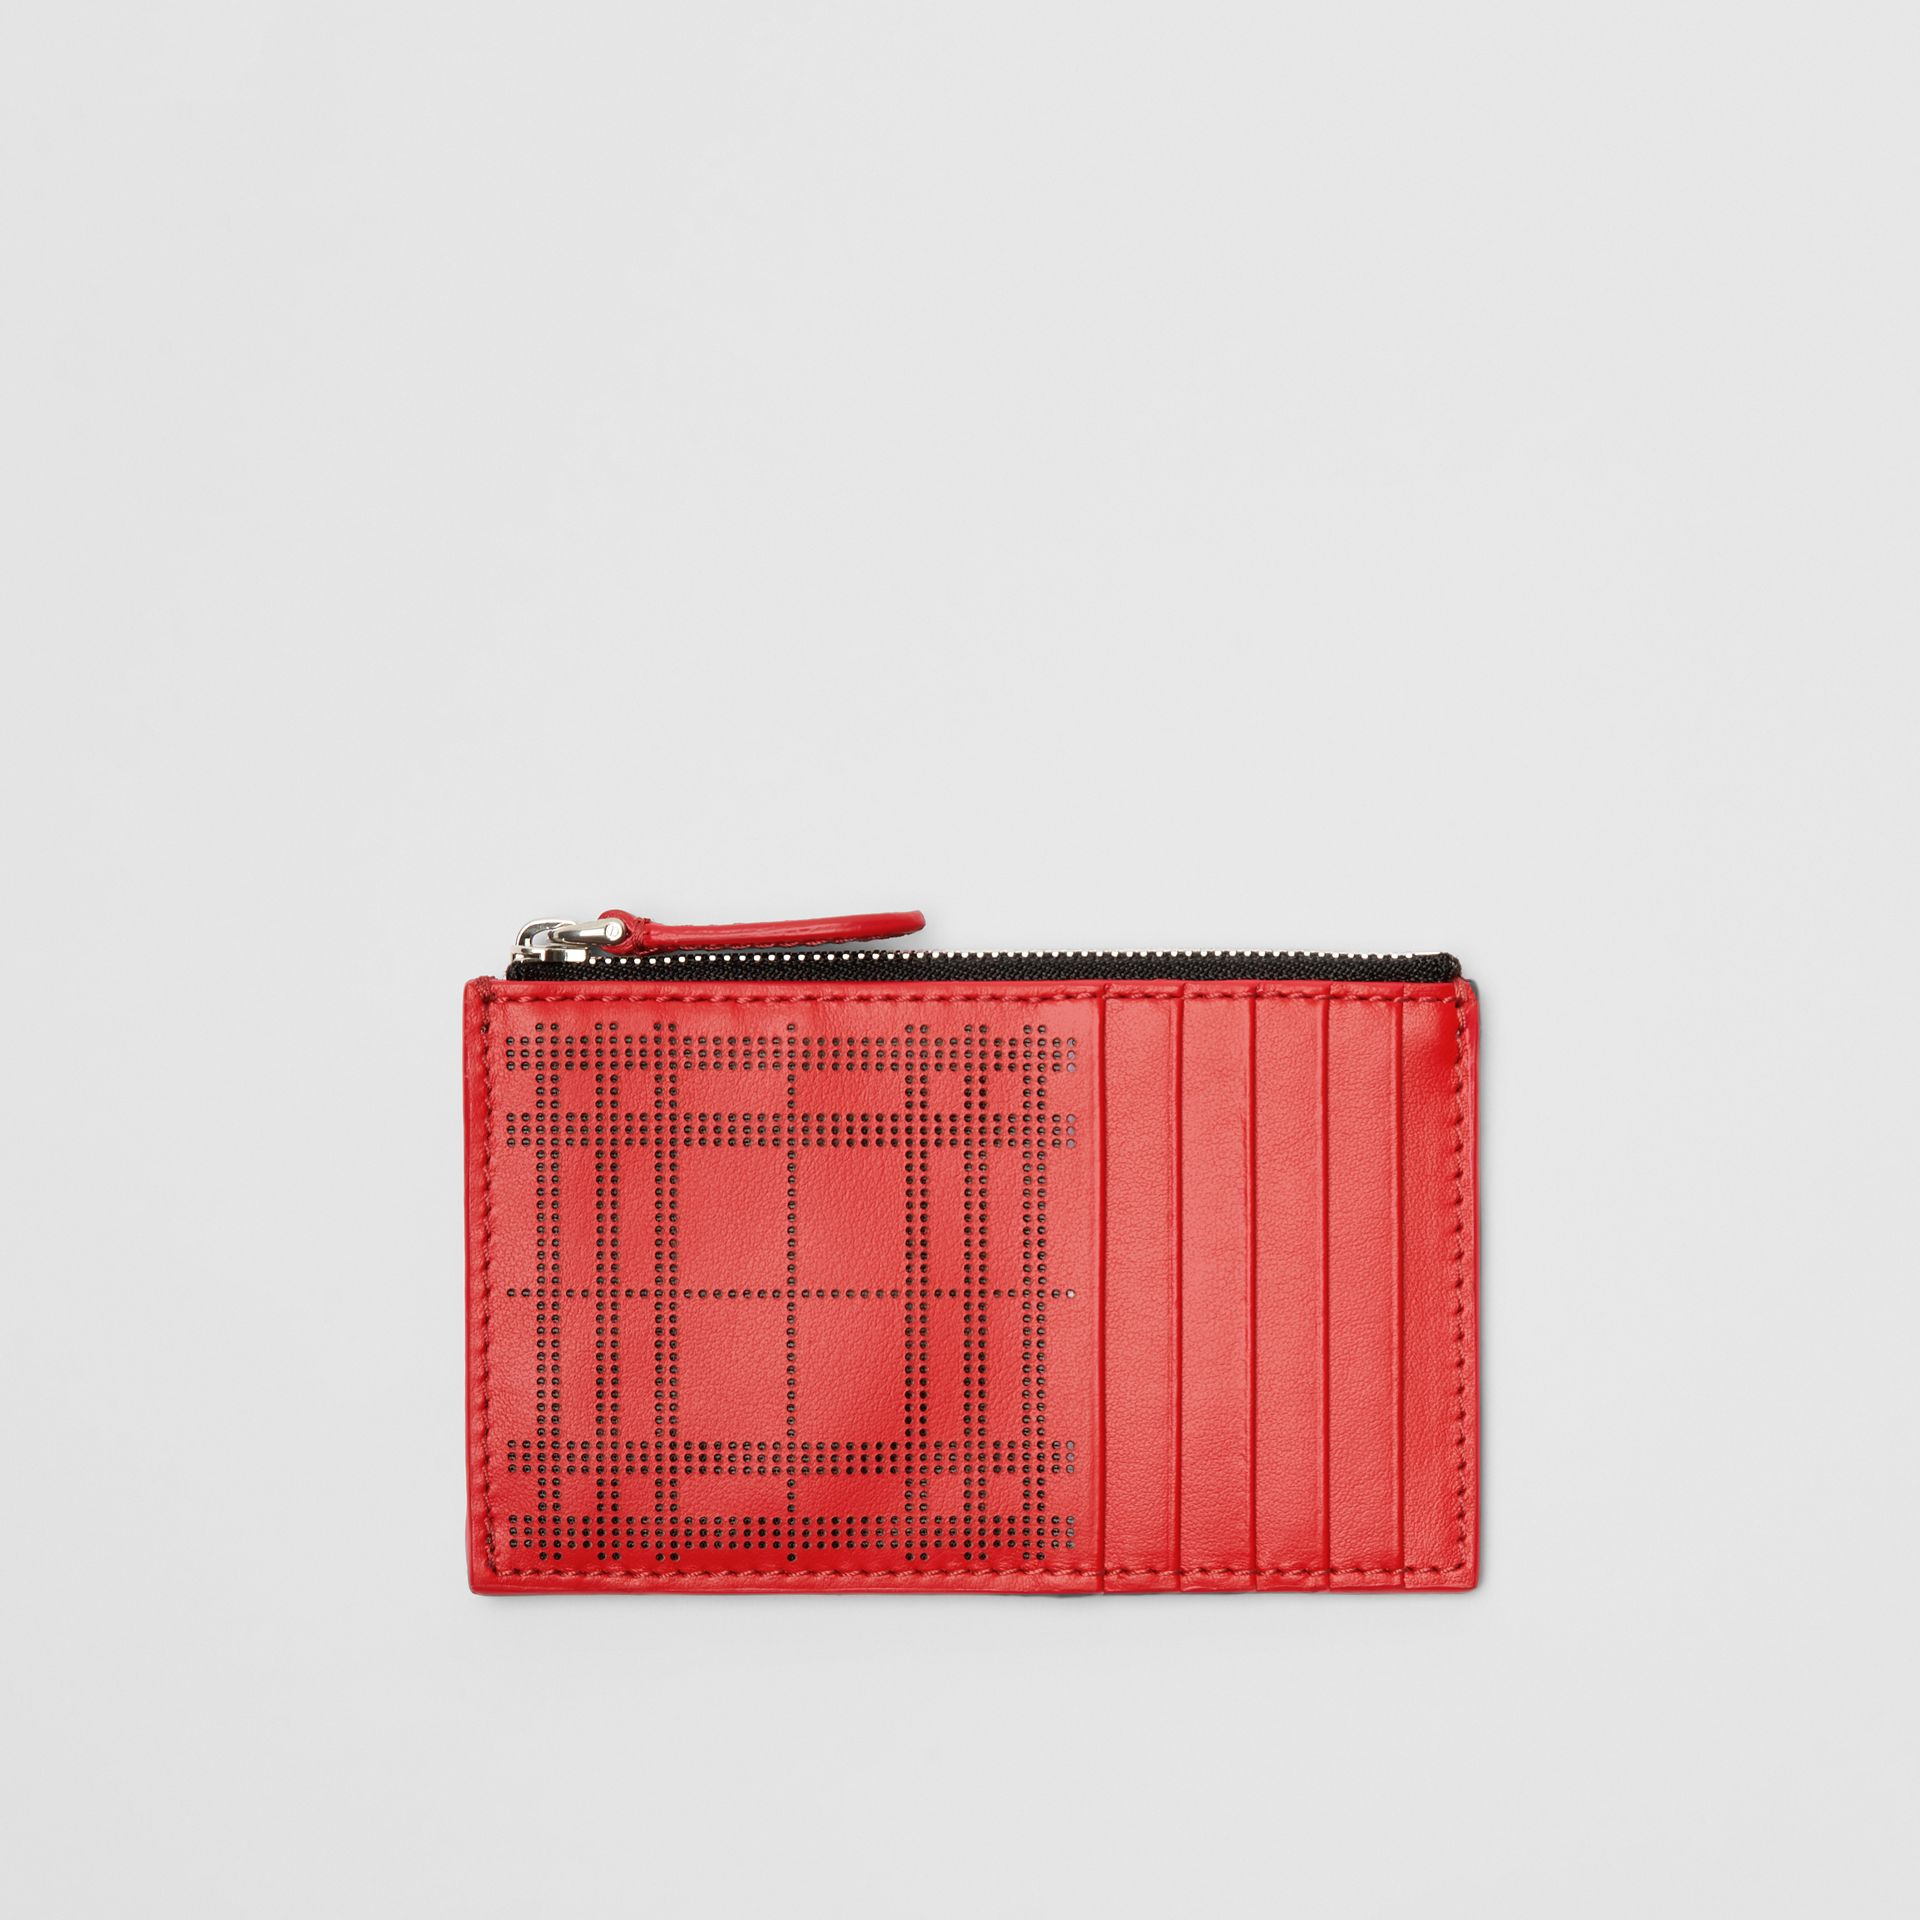 Porte-cartes zippé en cuir à motif check perforé (Rouge Rouille) - Homme | Burberry - photo de la galerie 0